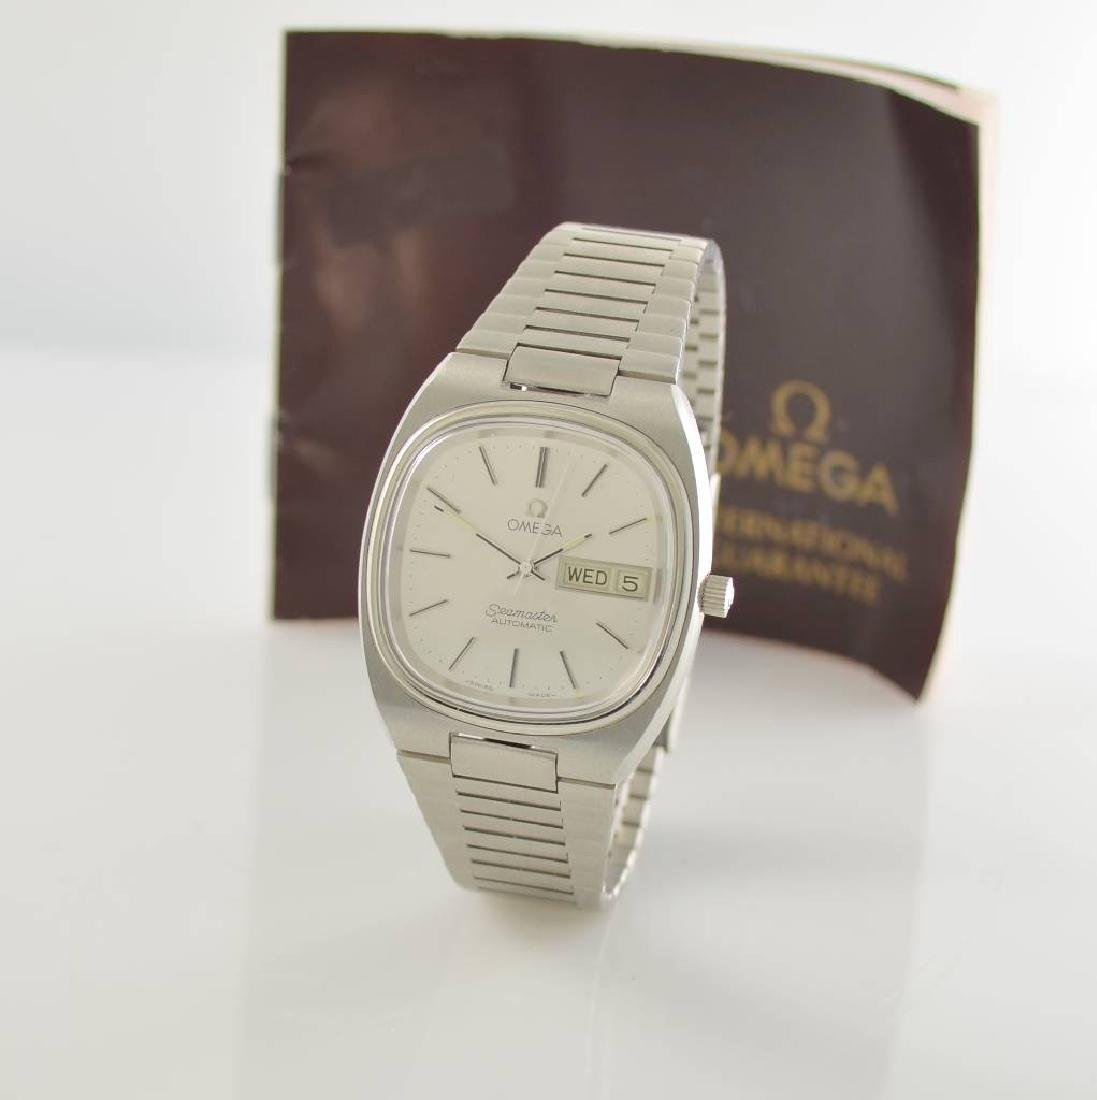 OMEGA Seamaster stainless steel gents wristwatch - 4